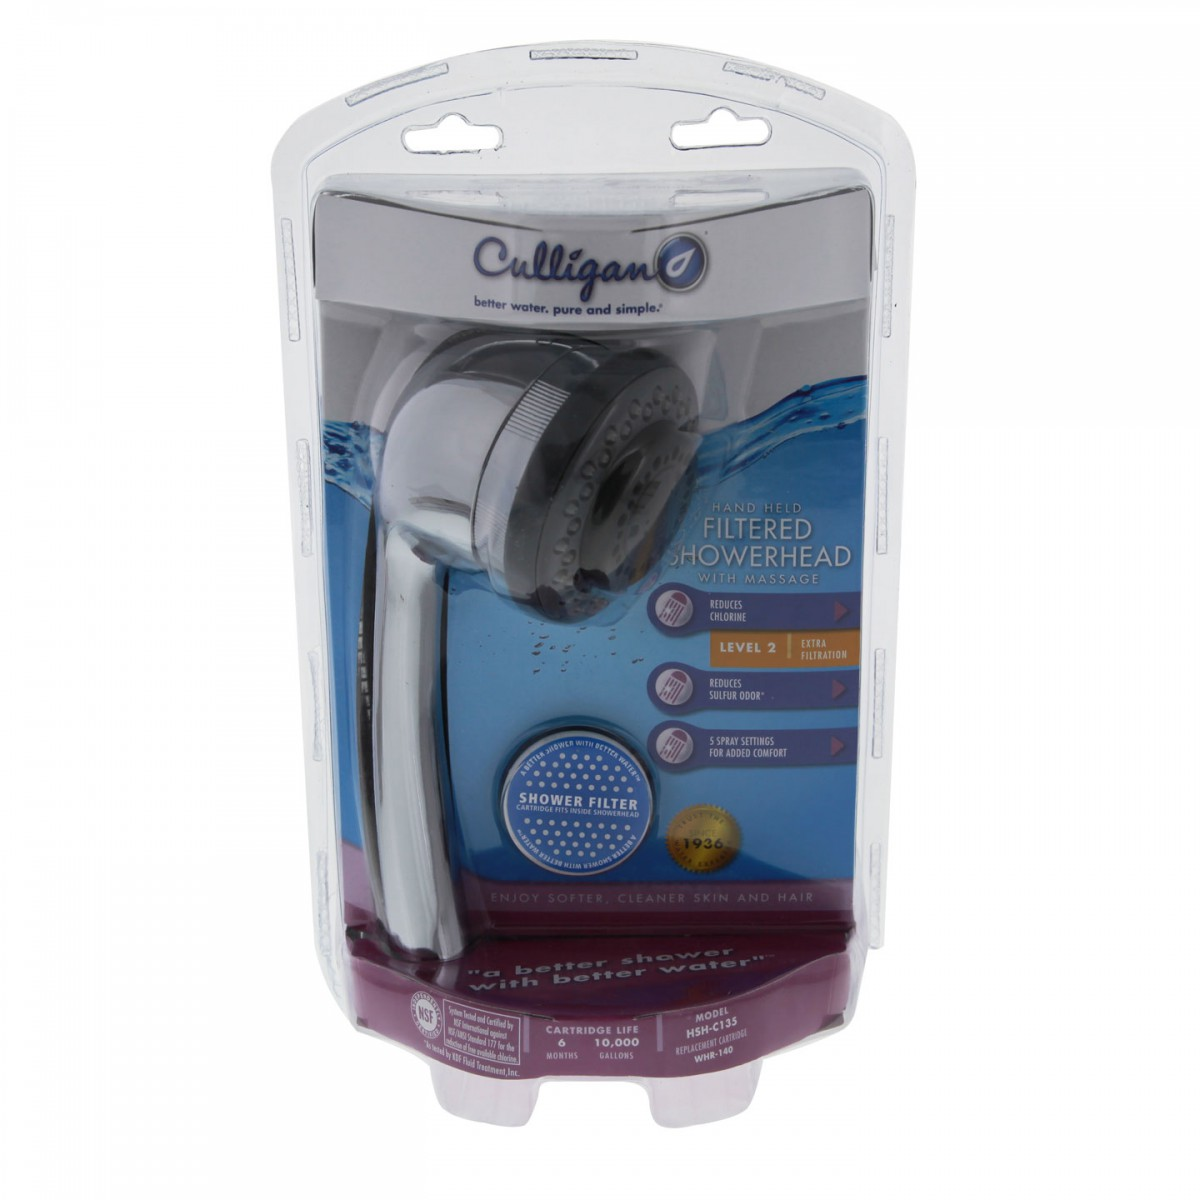 Culligan Hsh C135 Hand Held Showerhead With Shower Filter